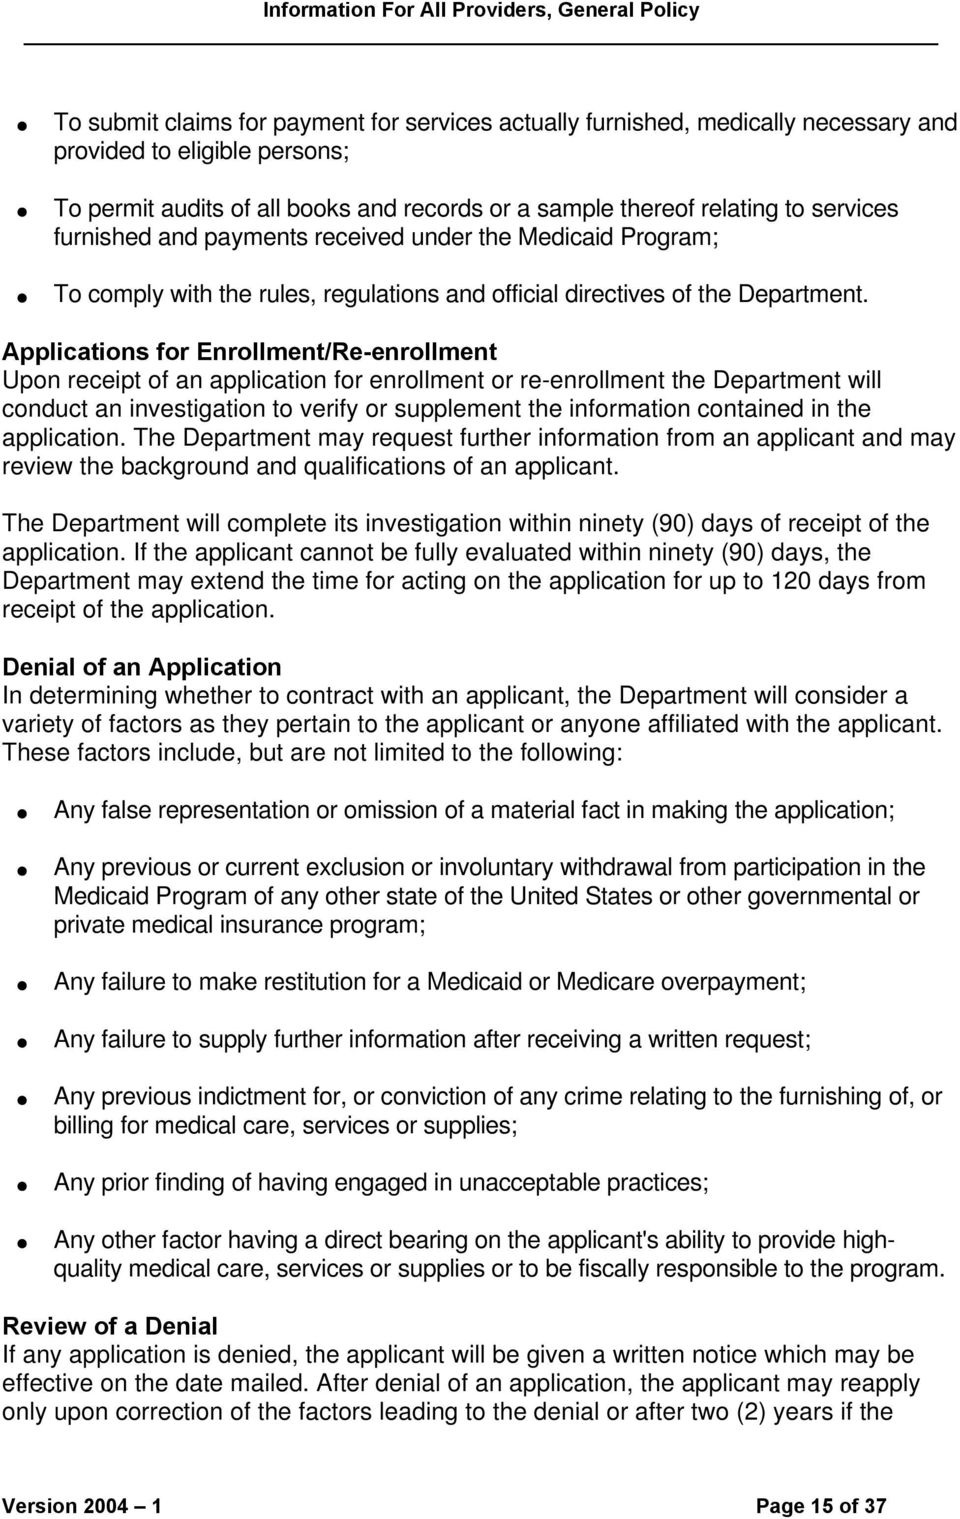 Applications for Enrollment/Re-enrollment Upon receipt of an application for enrollment or re-enrollment the Department will conduct an investigation to verify or supplement the information contained